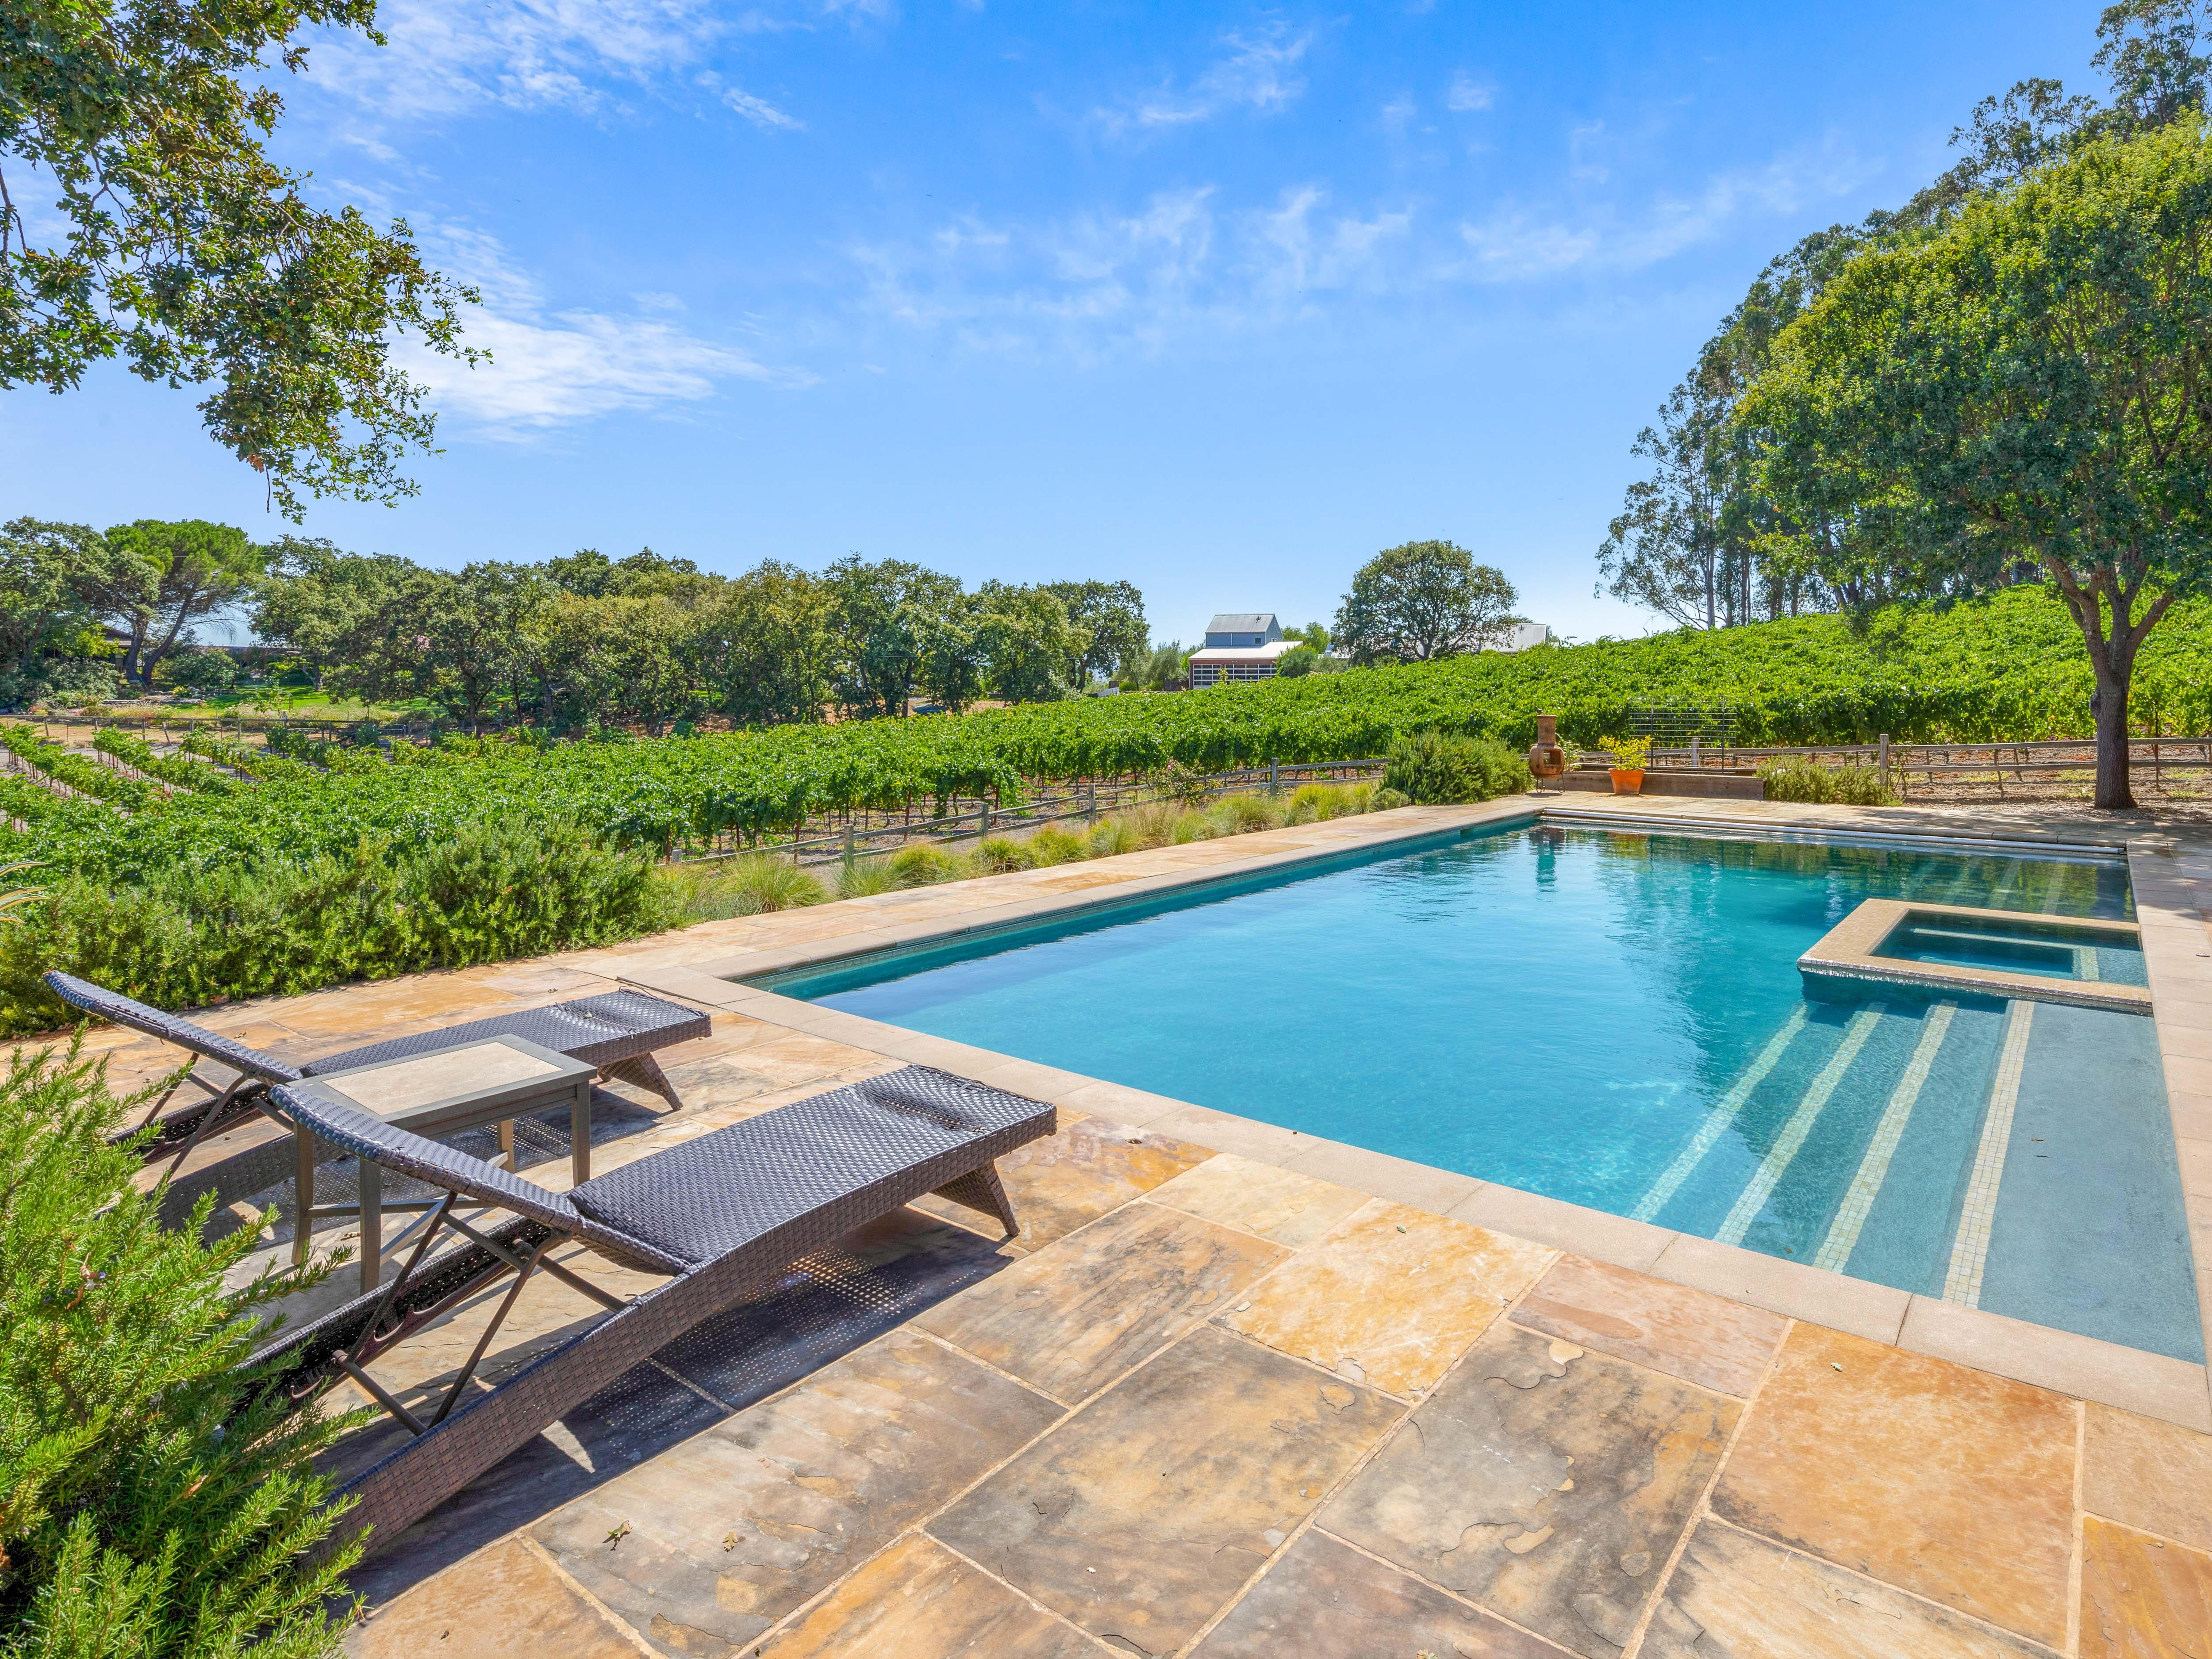 Welcome to Sonoma! This vineyard estate is professionally managed by TurnKey Vacation Rentals.